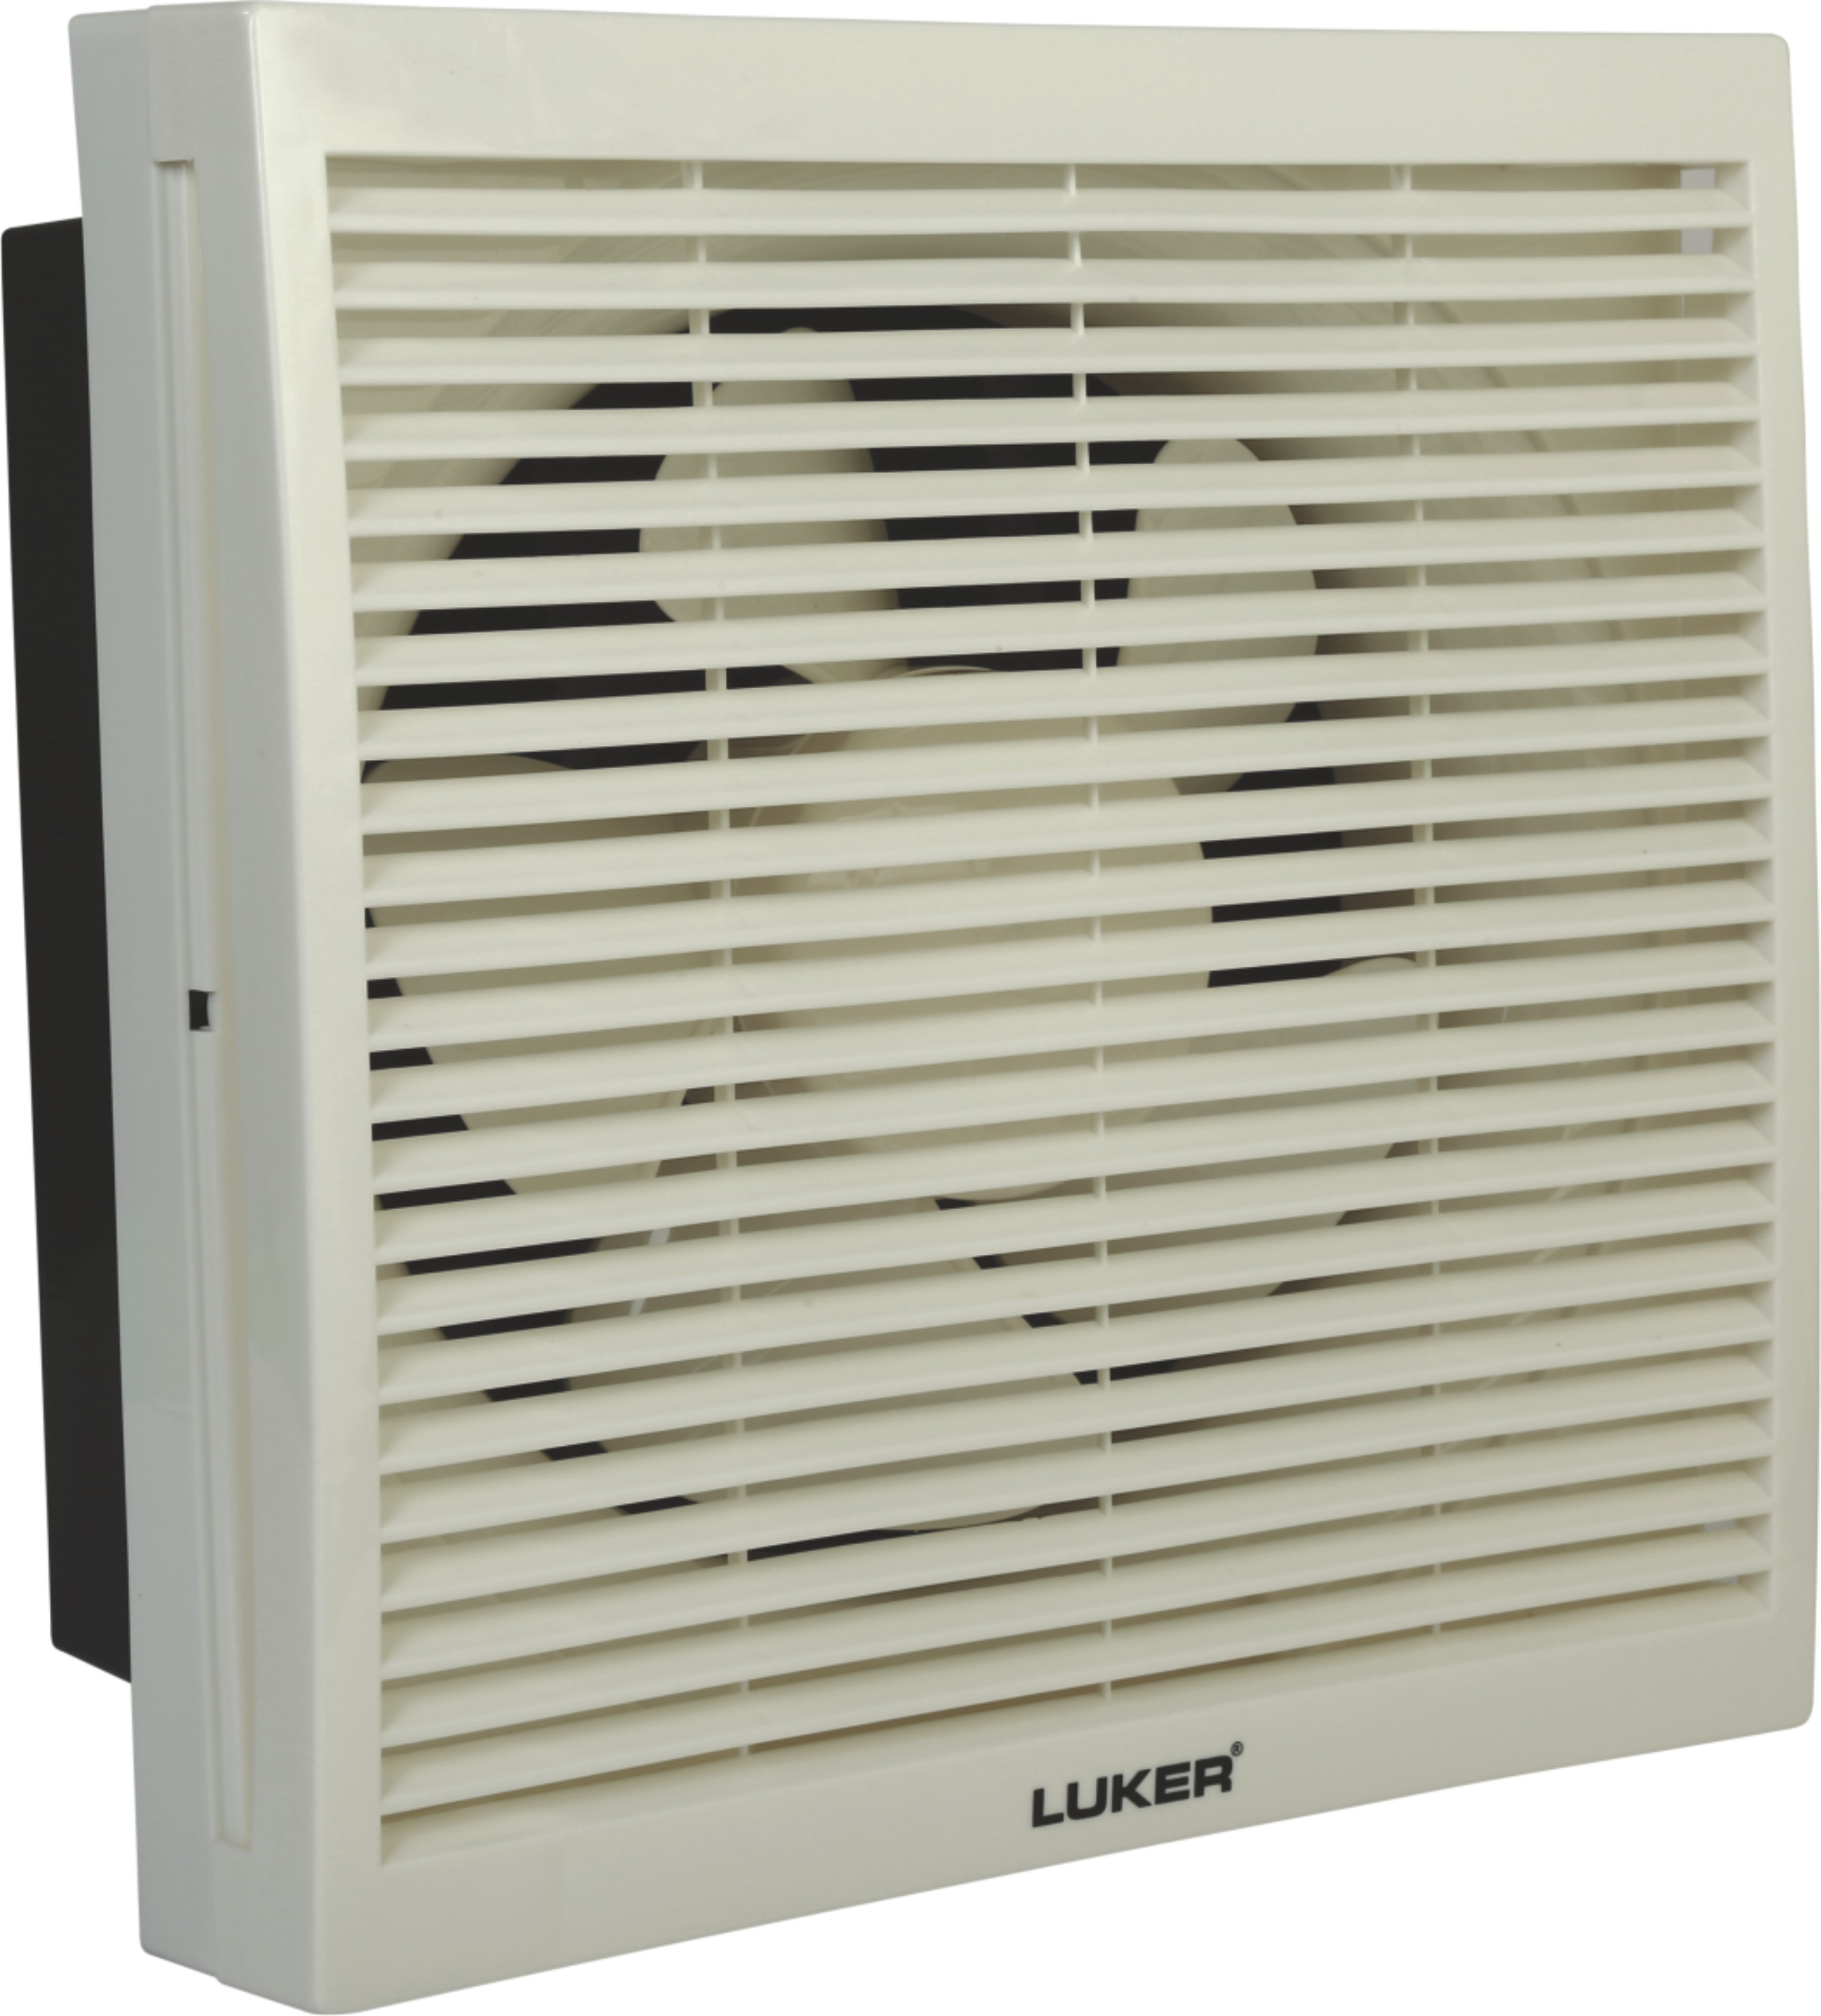 Ventil Air - LX series with front grill and back Shutter Fans - LX10